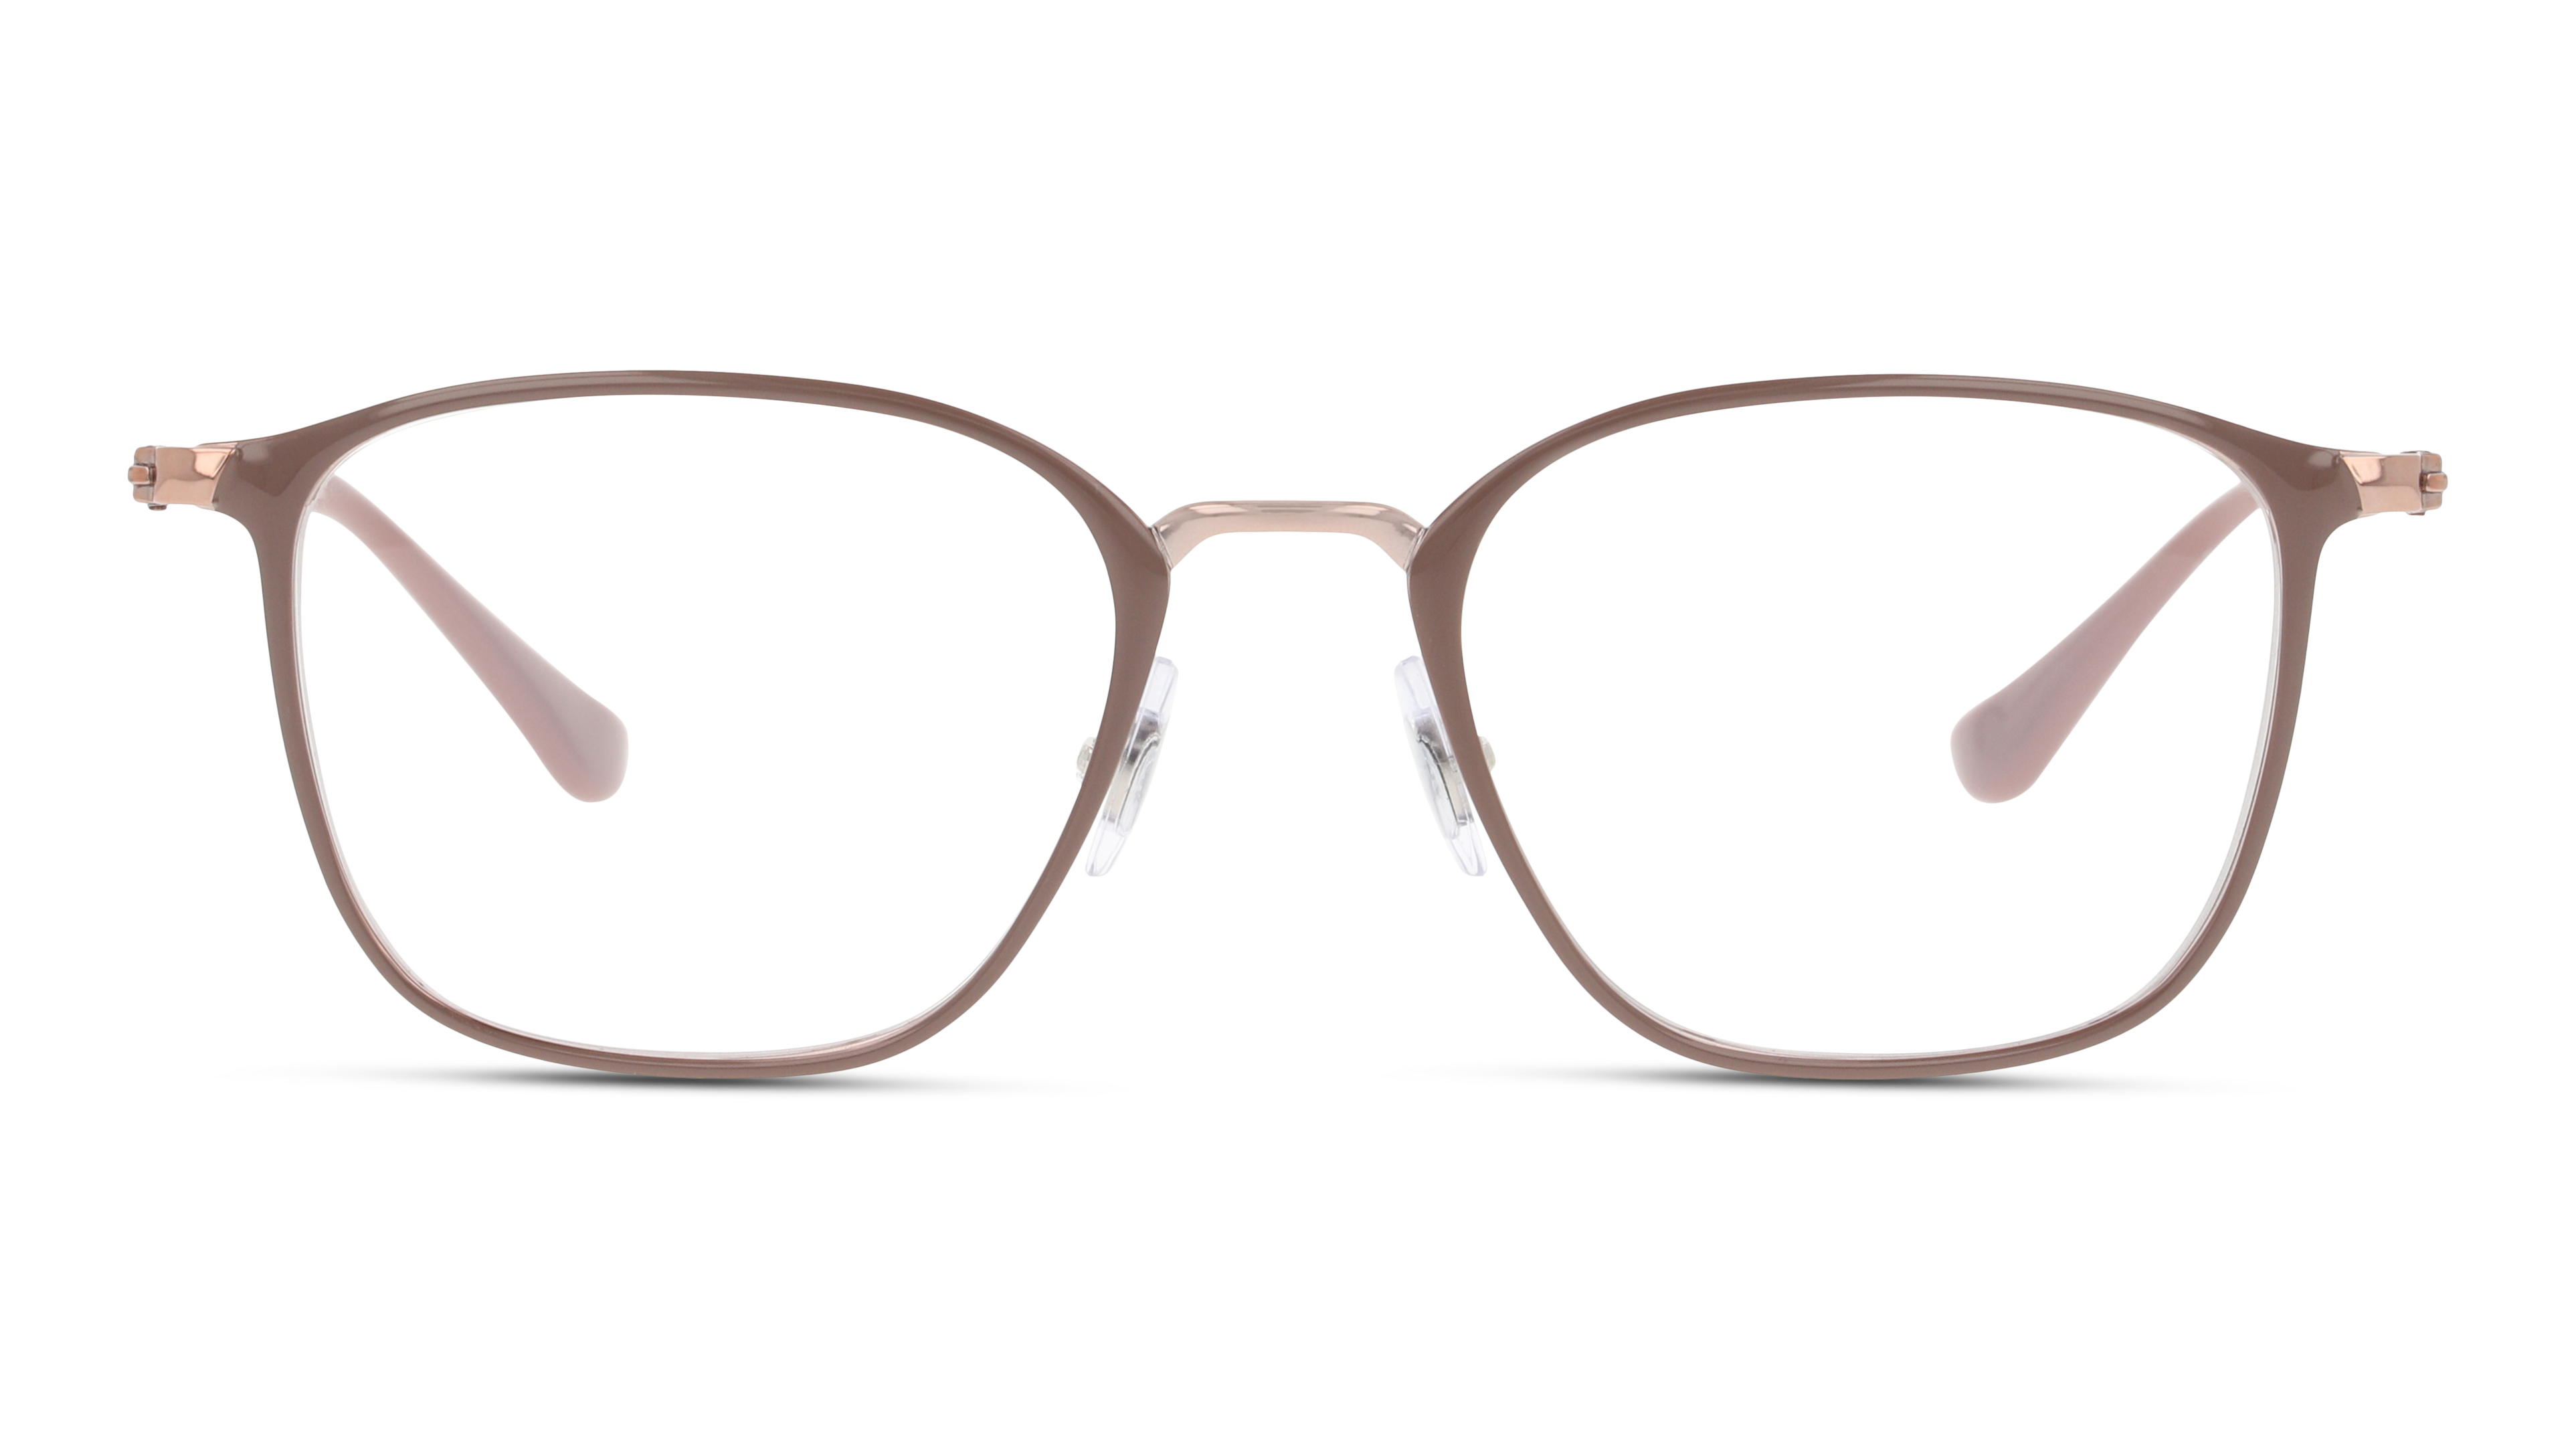 Front Ray-Ban Ray-Ban 0RX6466 2973 49/19 Beige, Brons